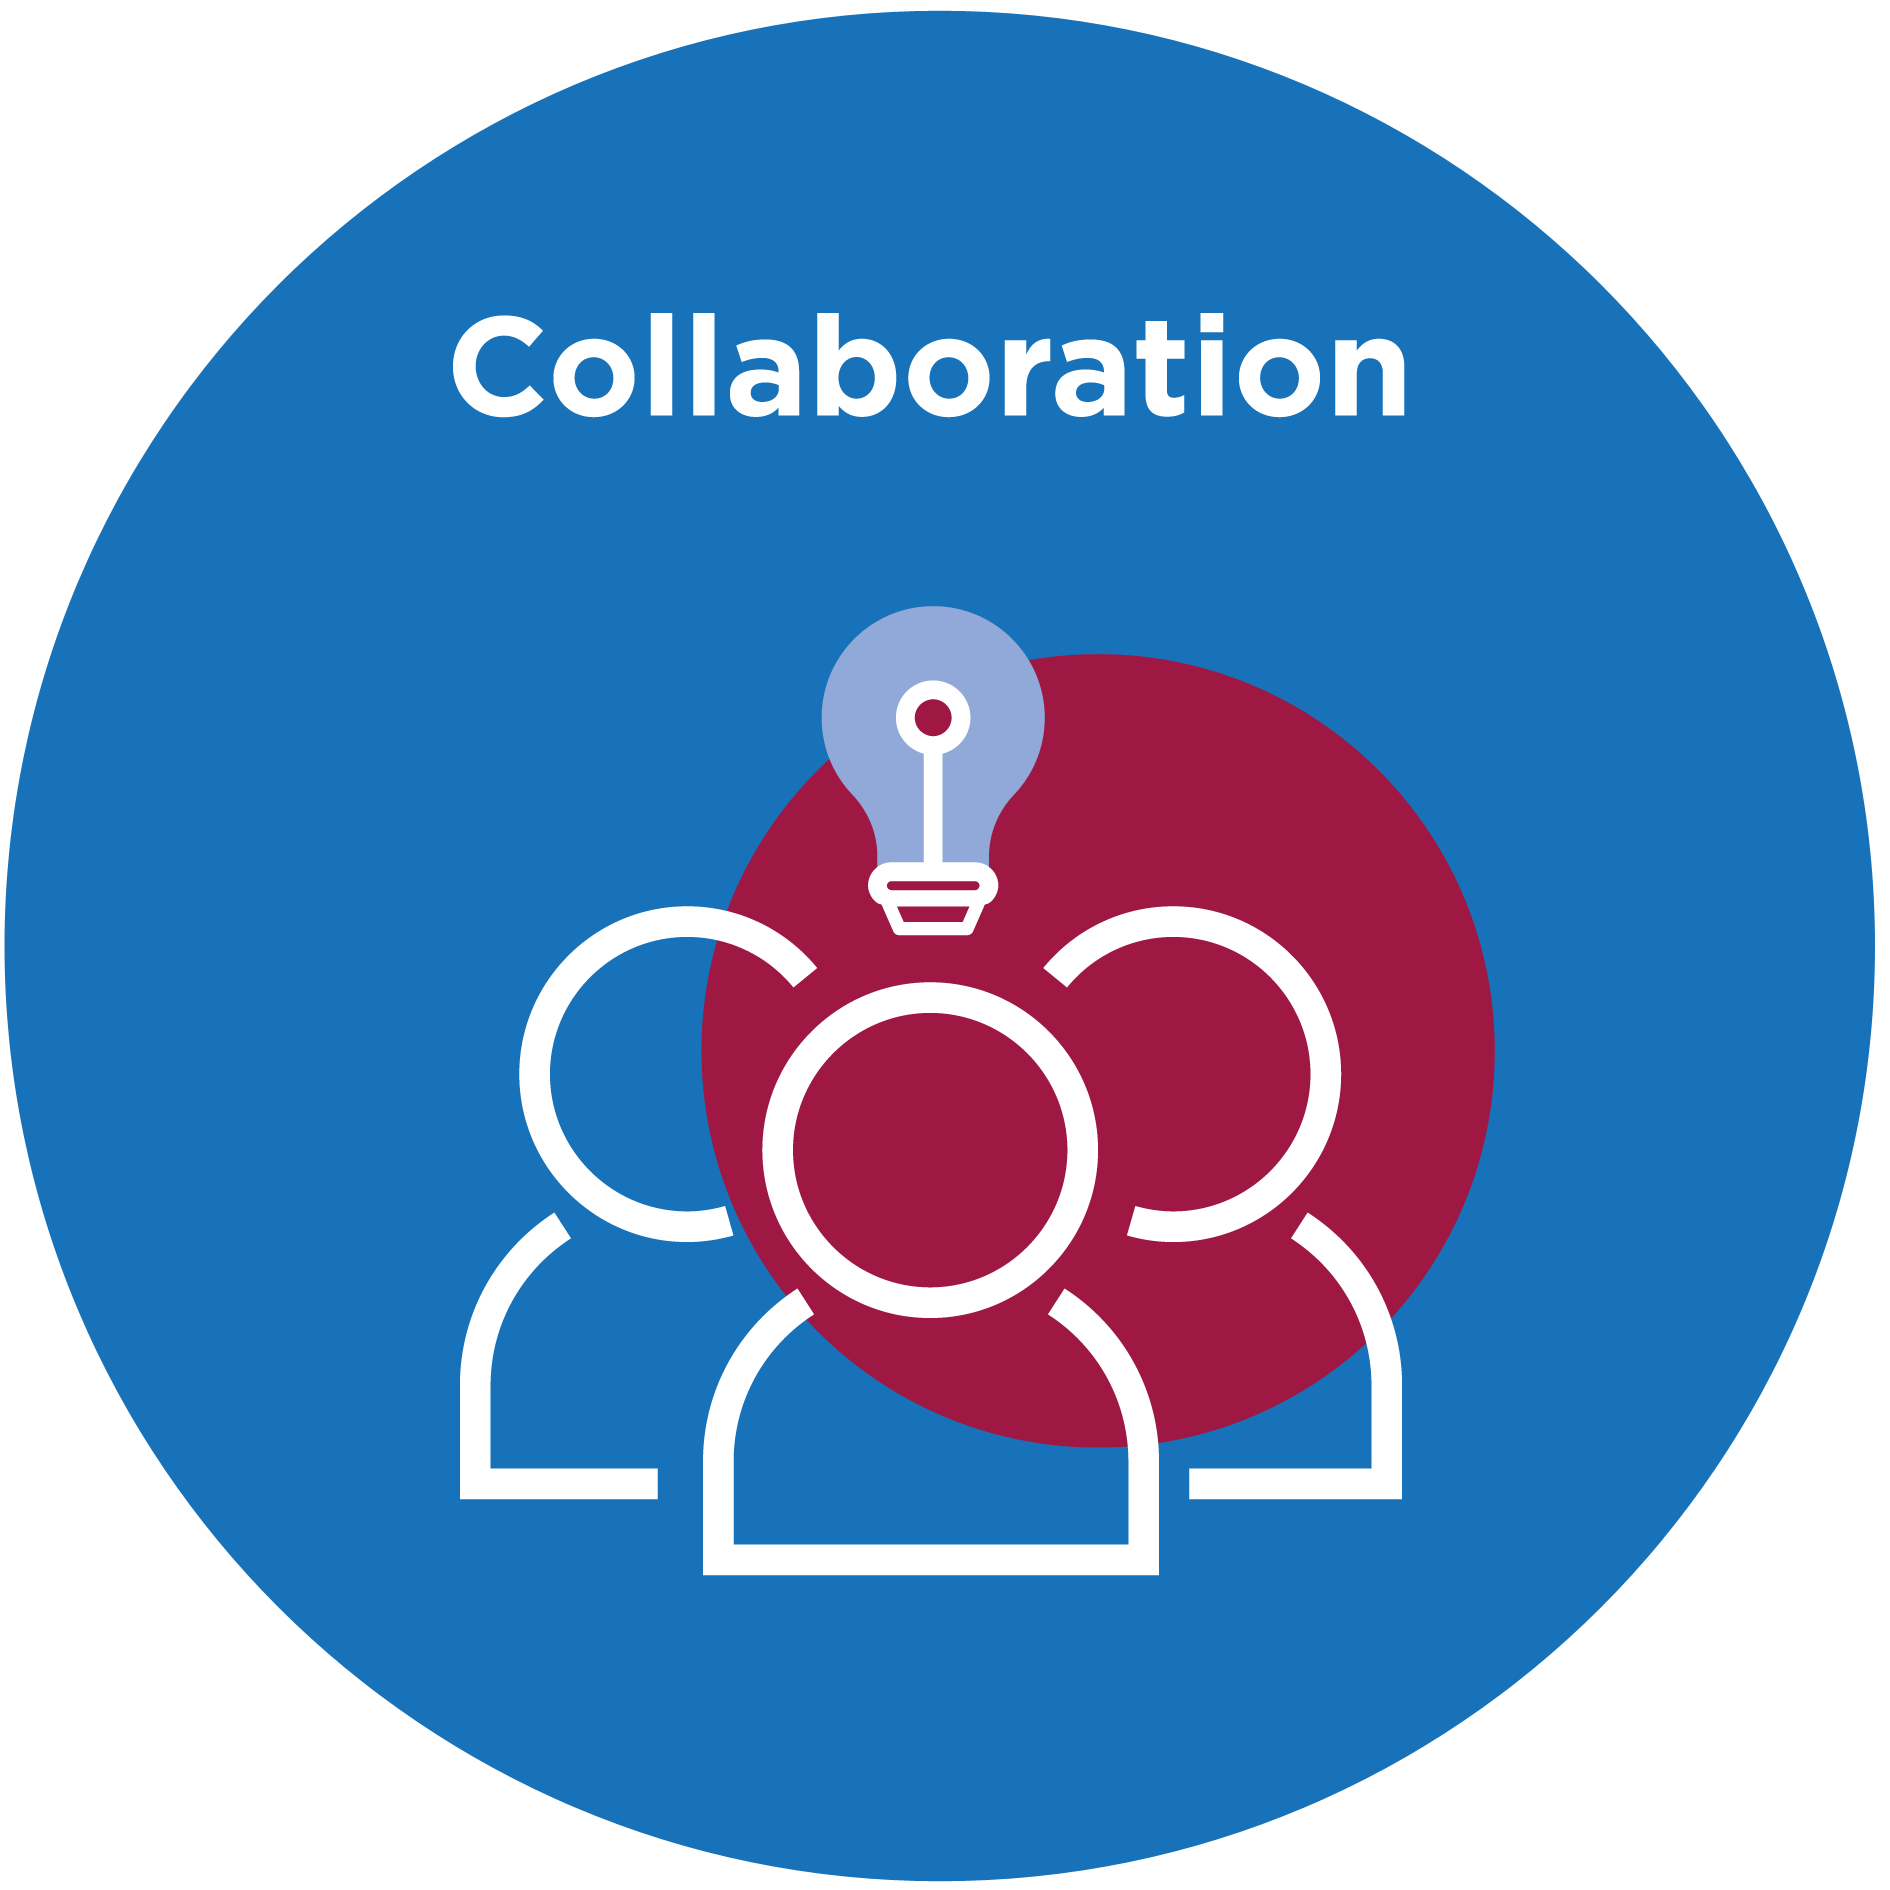 An icon of a group of people with a light bulk above them with text that reads 'Collaboration'